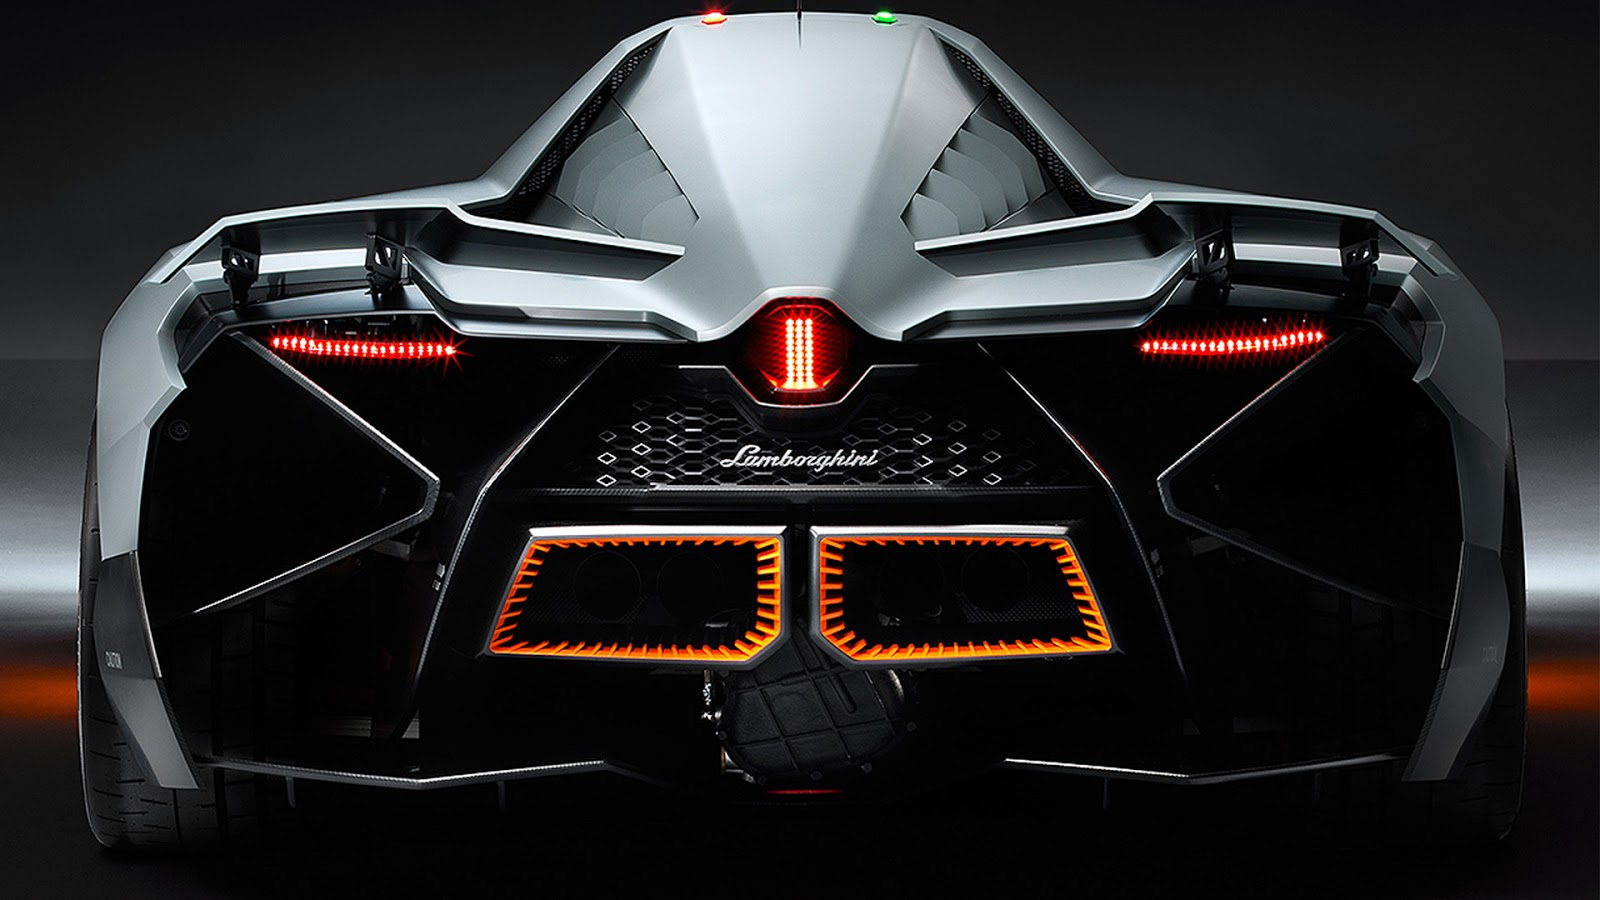 lamborghini egoista wallpaper hd images